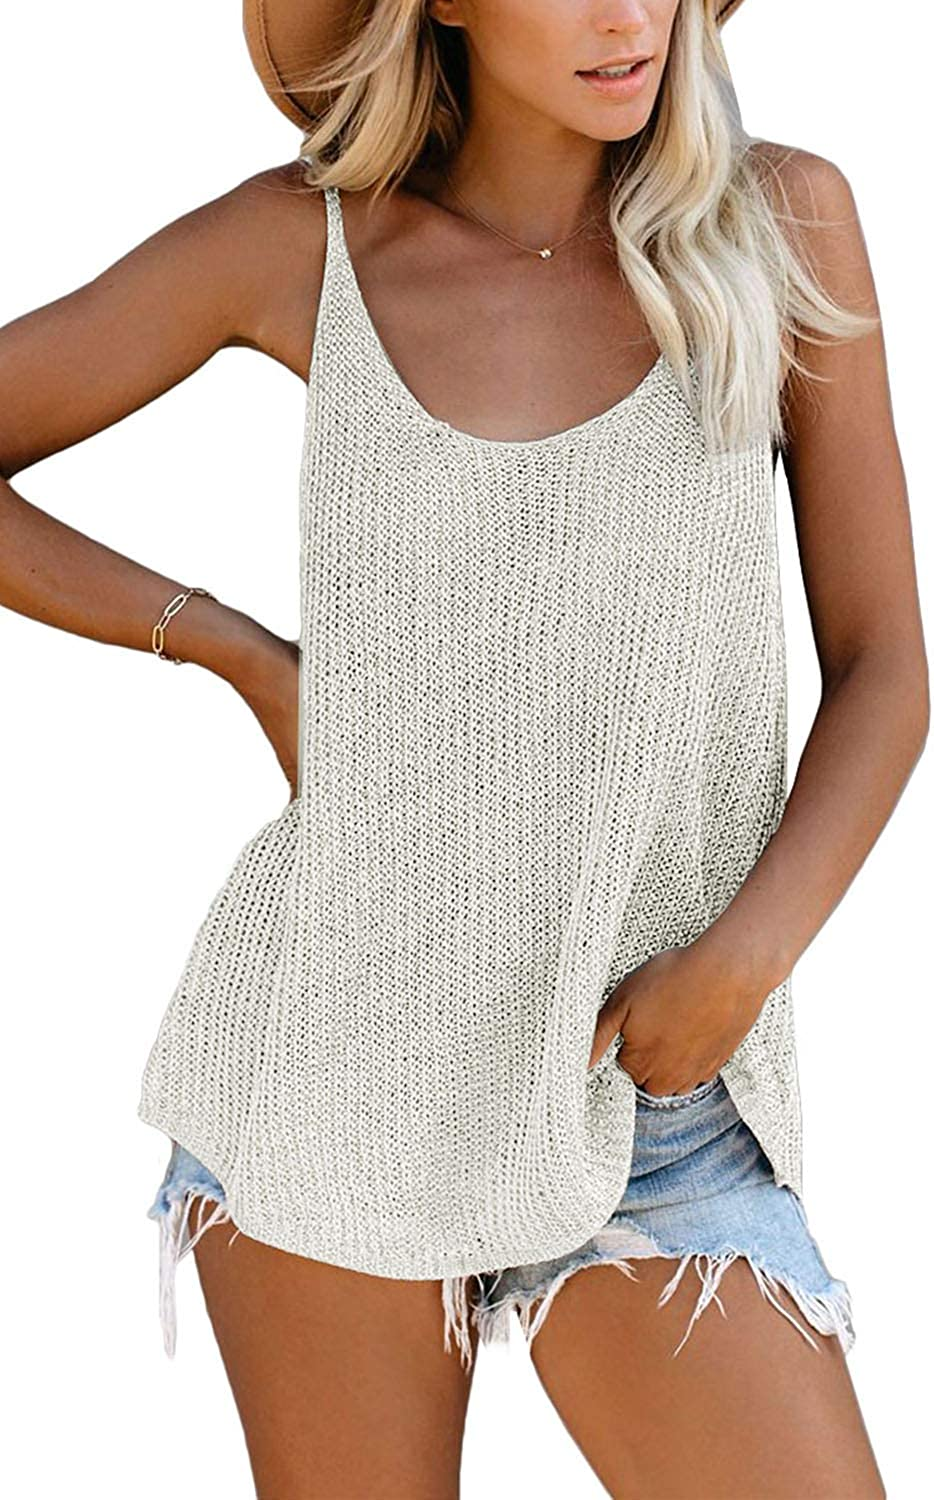 GOLDPKF Knit Tank Tops and Blouses for Women Scoop Neck Loose Fit Casual Shirts